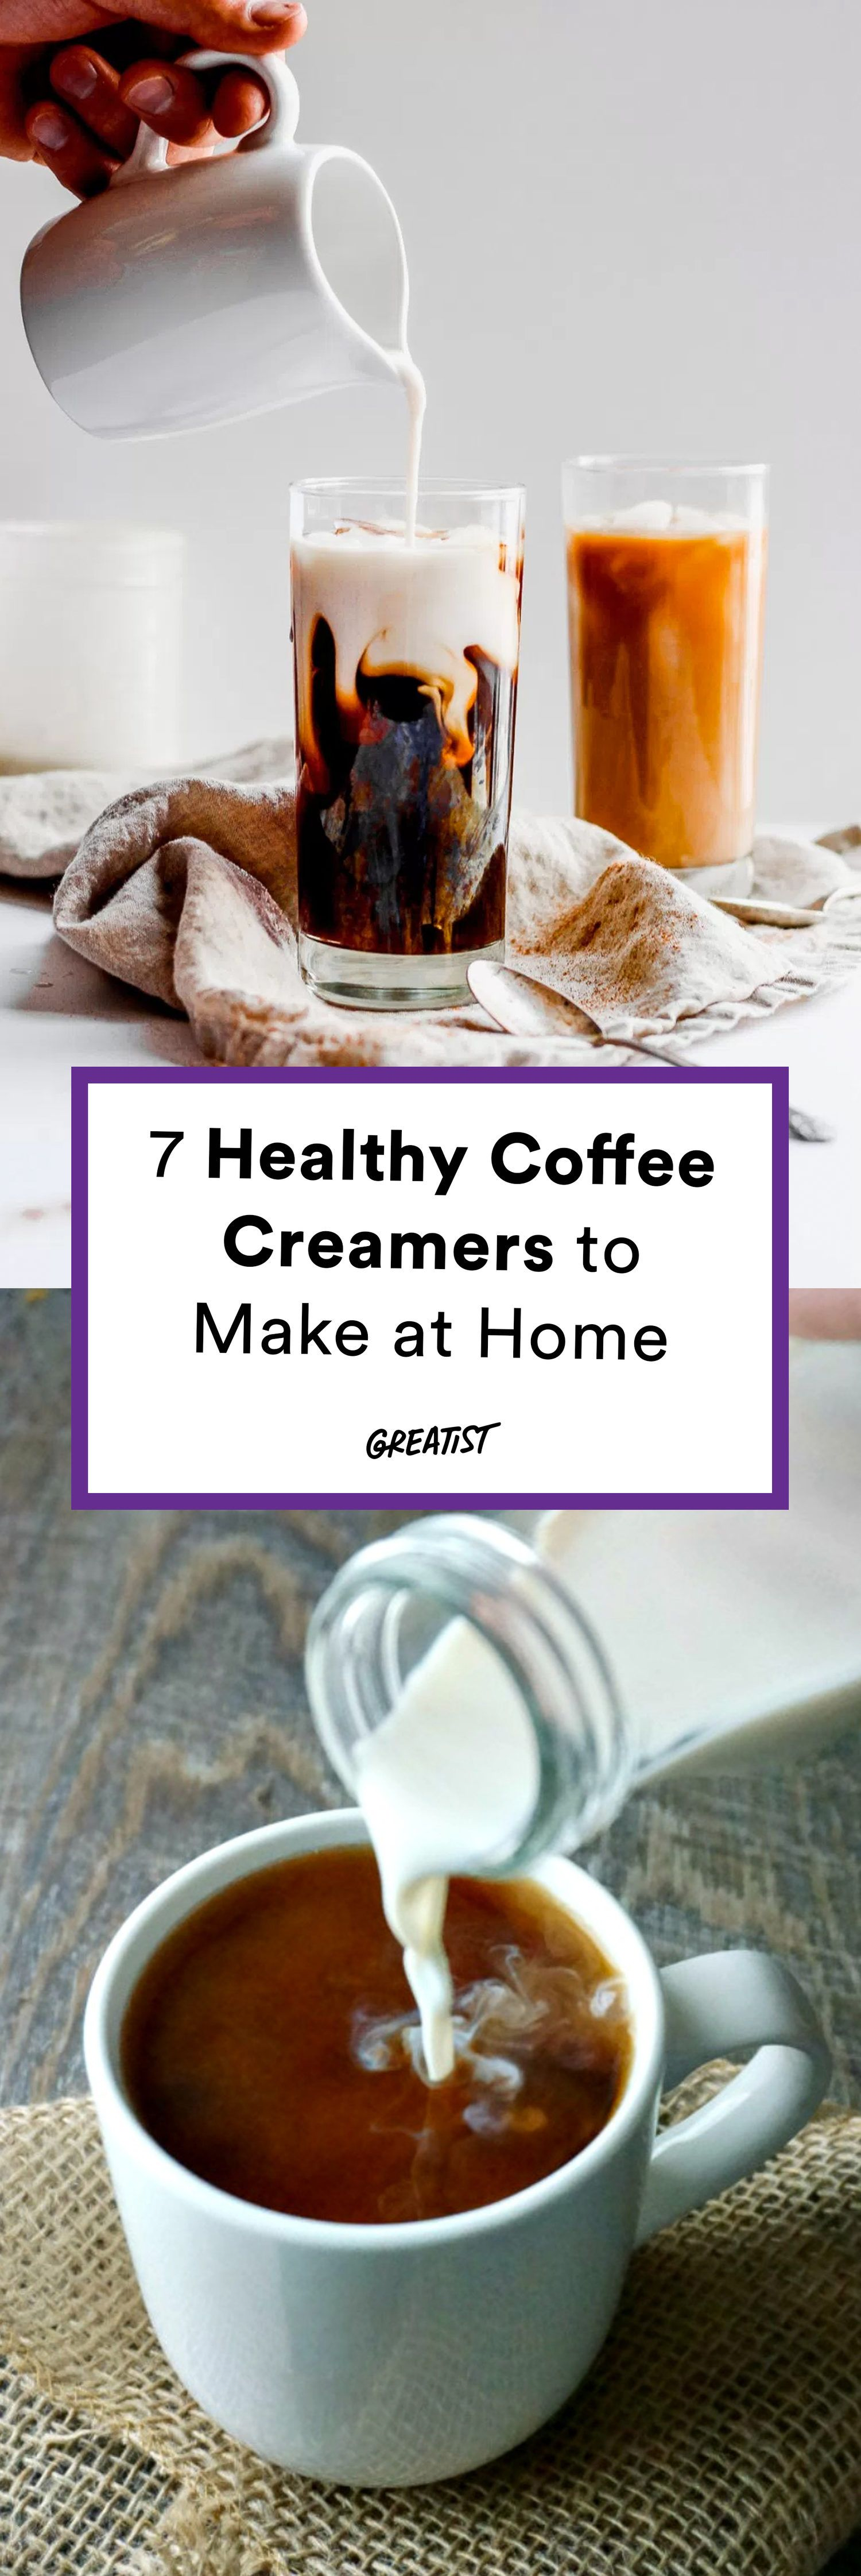 7 Homemade Coffee Creamers That Aren't Loaded With Sugar